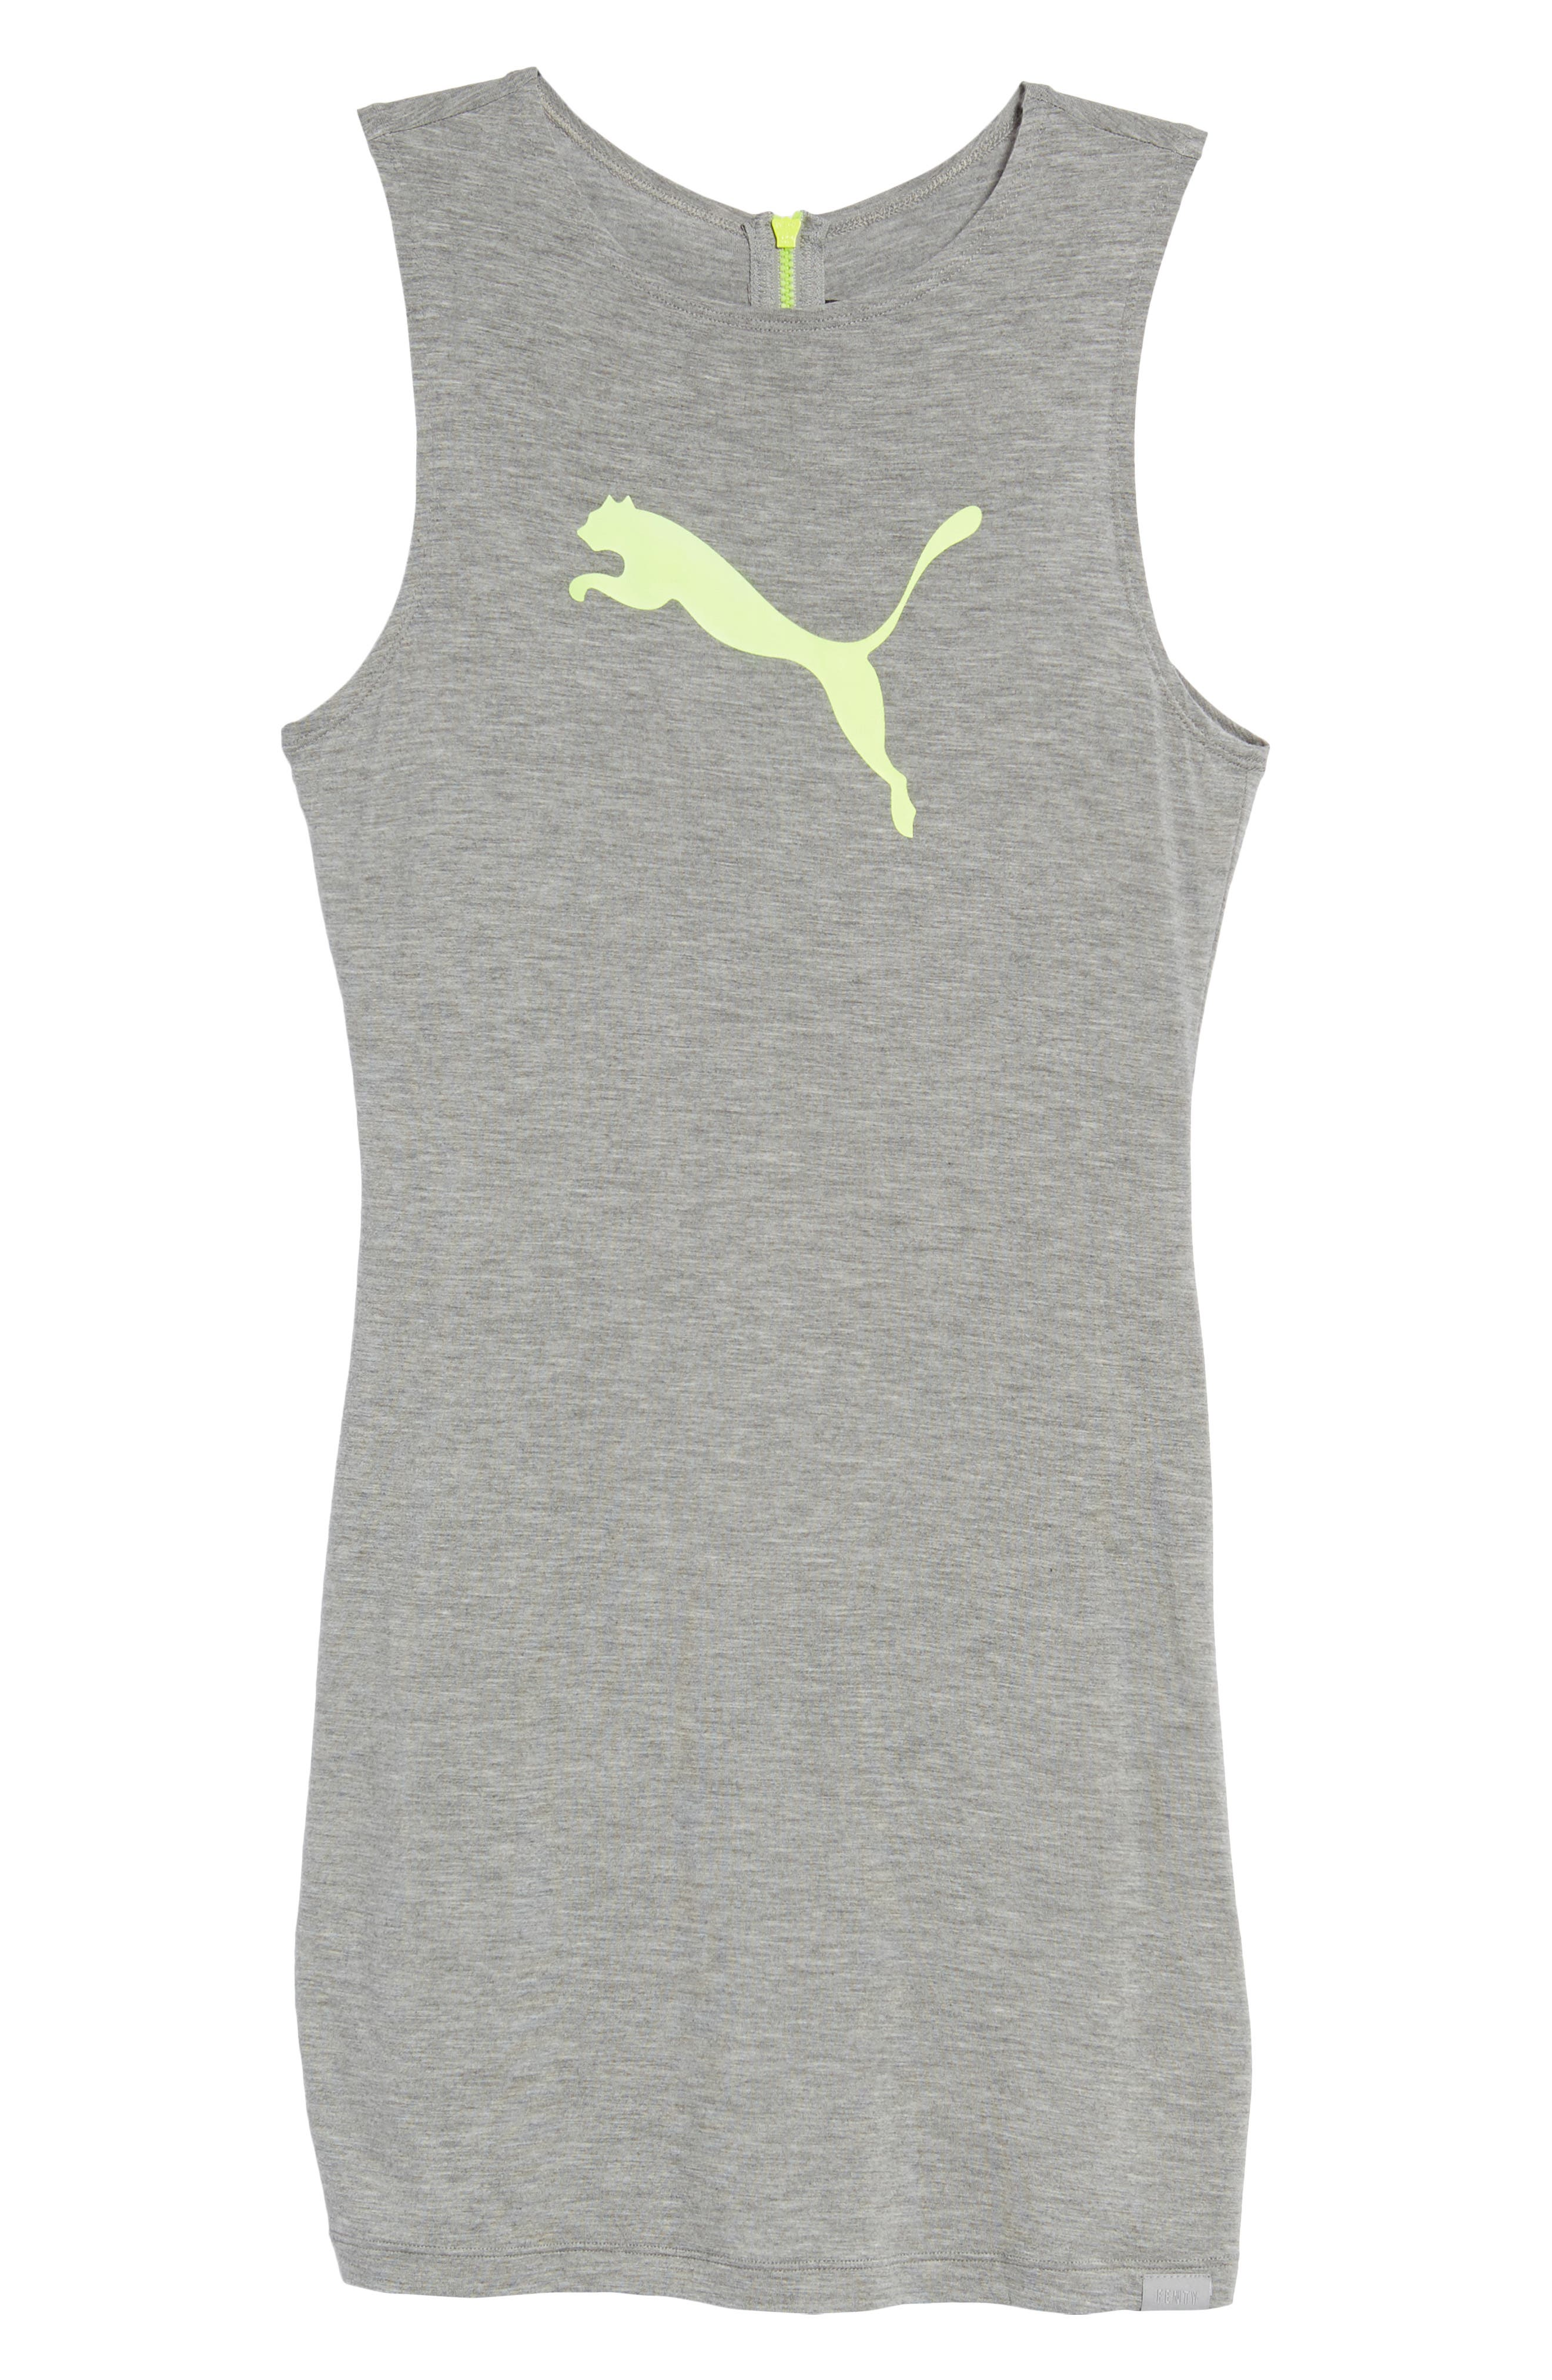 PUMA by Rihanna Body-Con Dress,                             Alternate thumbnail 7, color,                             Athletic Gray Heather